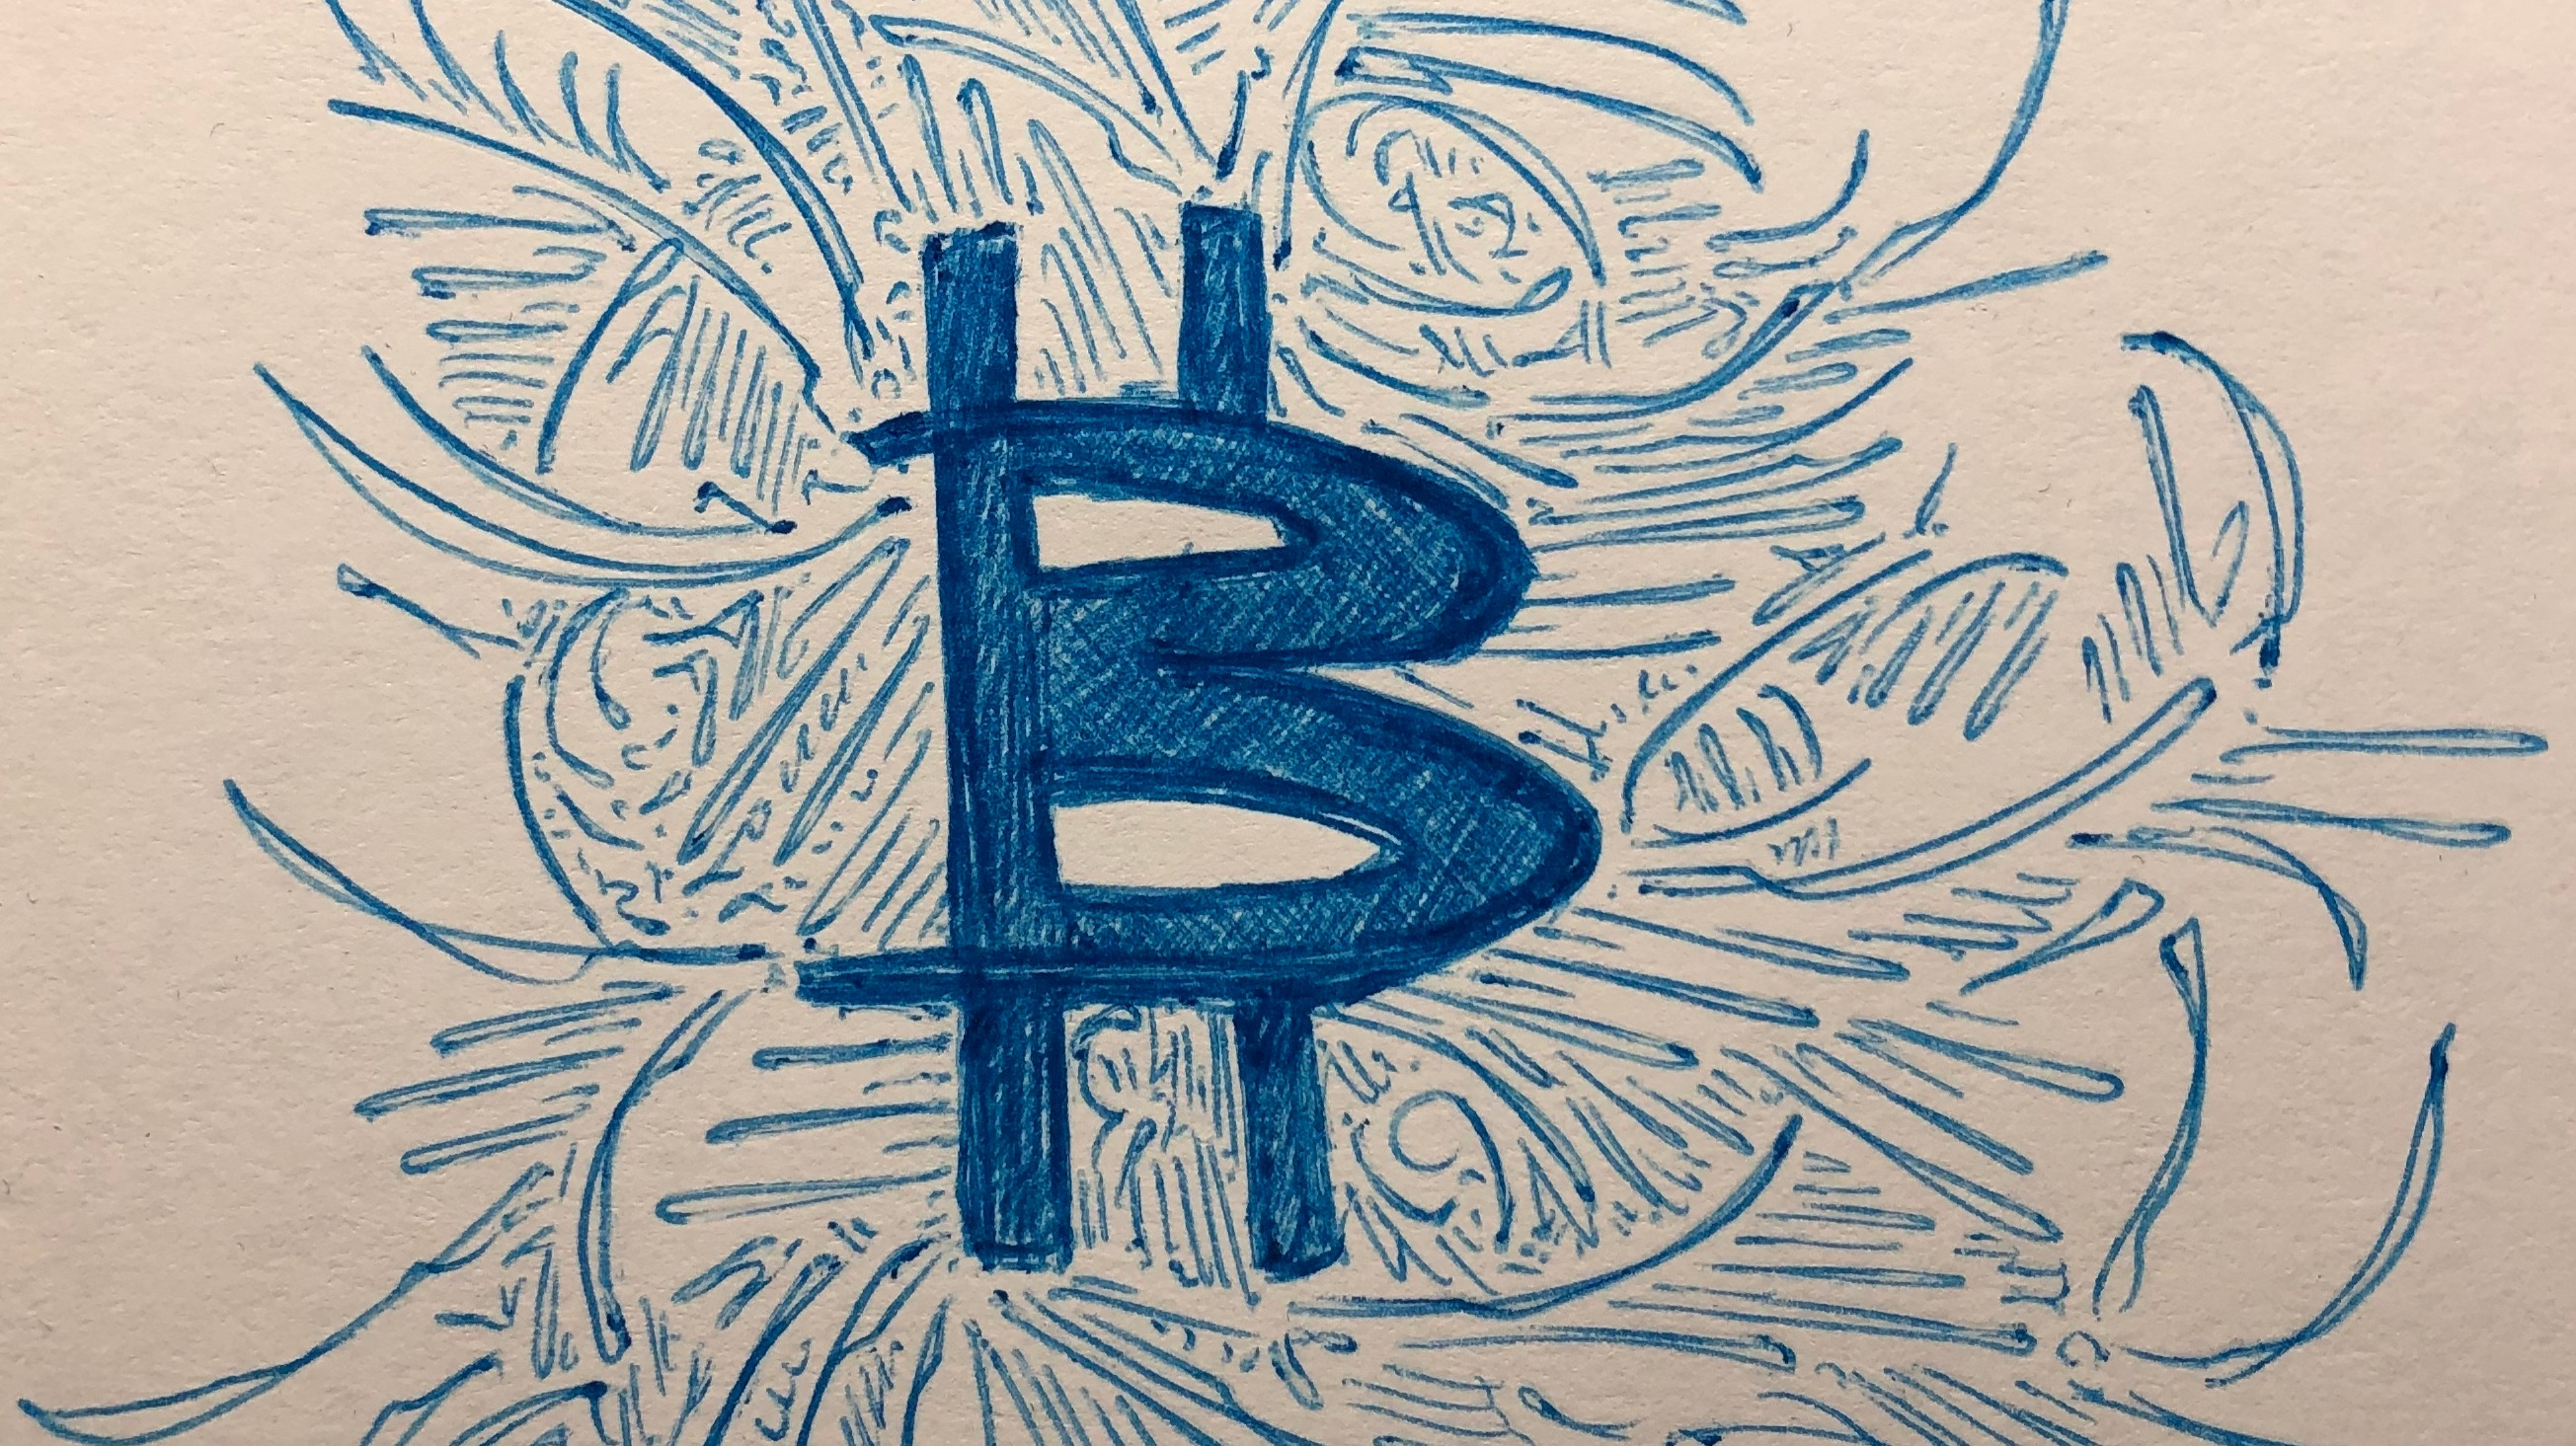 This is my personal interpretation of the Bitcoin symbol, expressed through my favorite medium: ballpoint pen on paper.